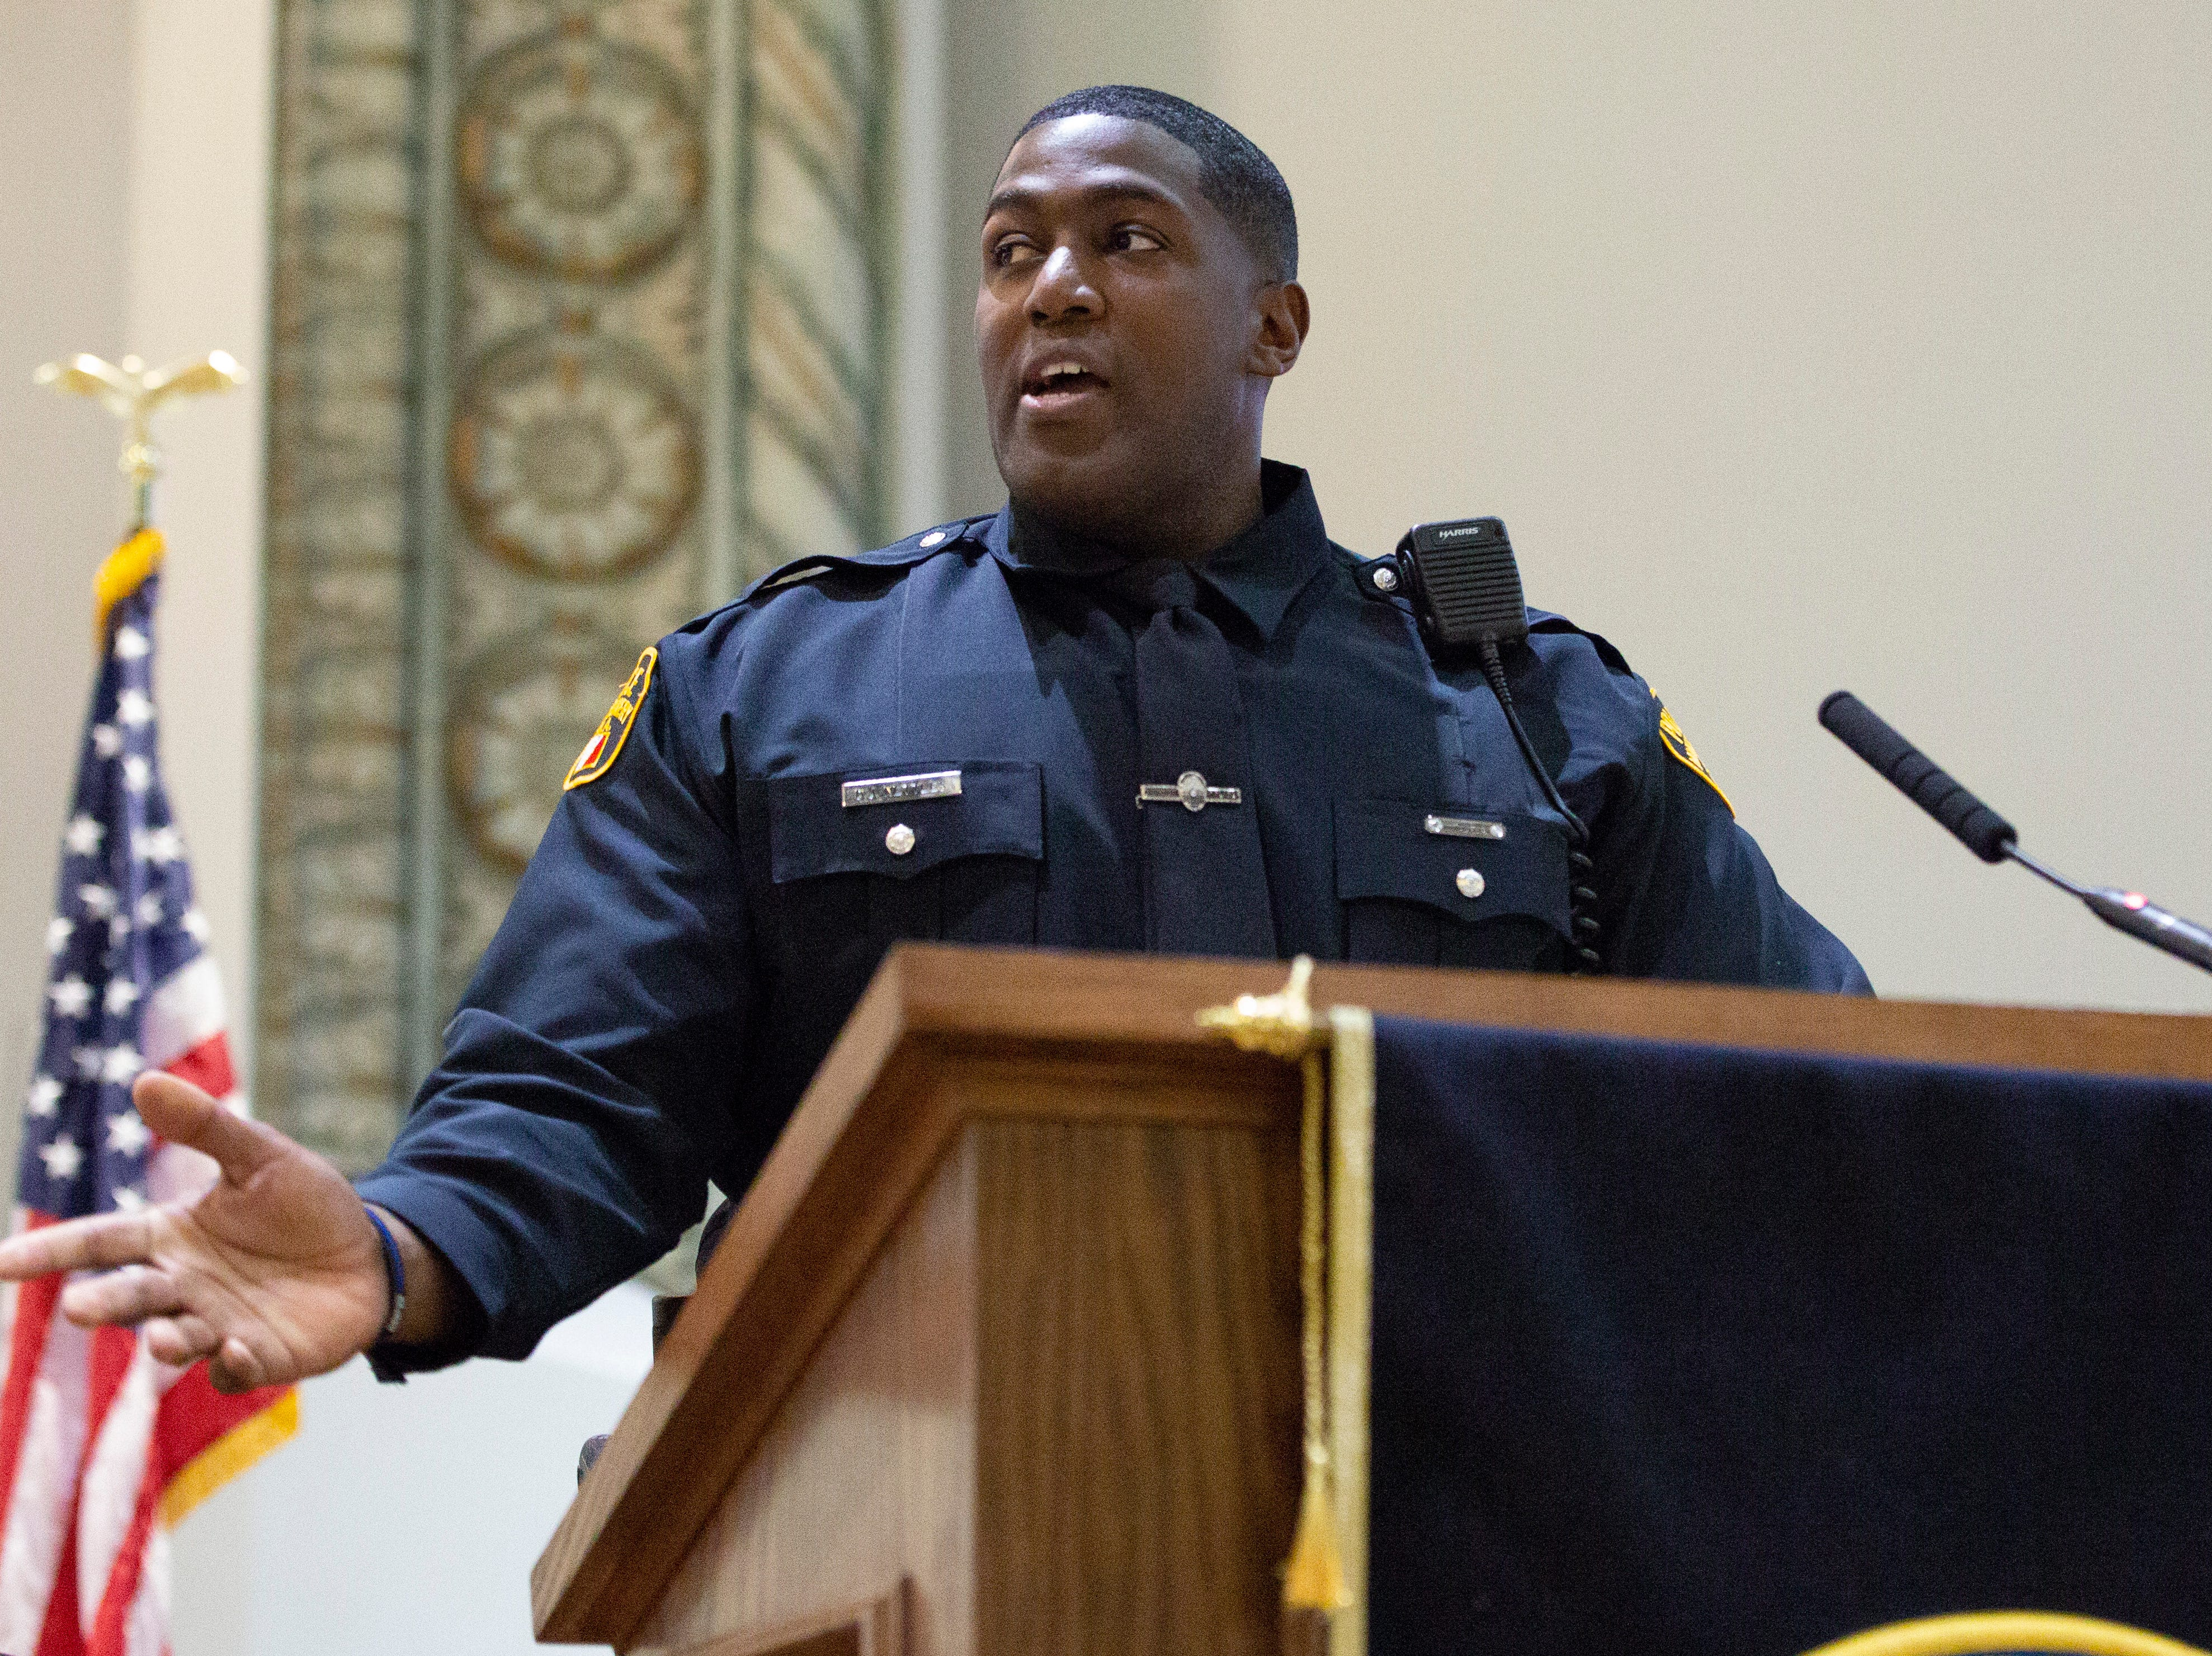 Montgomery police officer Derrin Nettles, president of his graduating class, thanks his instructors during a ceremony at City Hall.